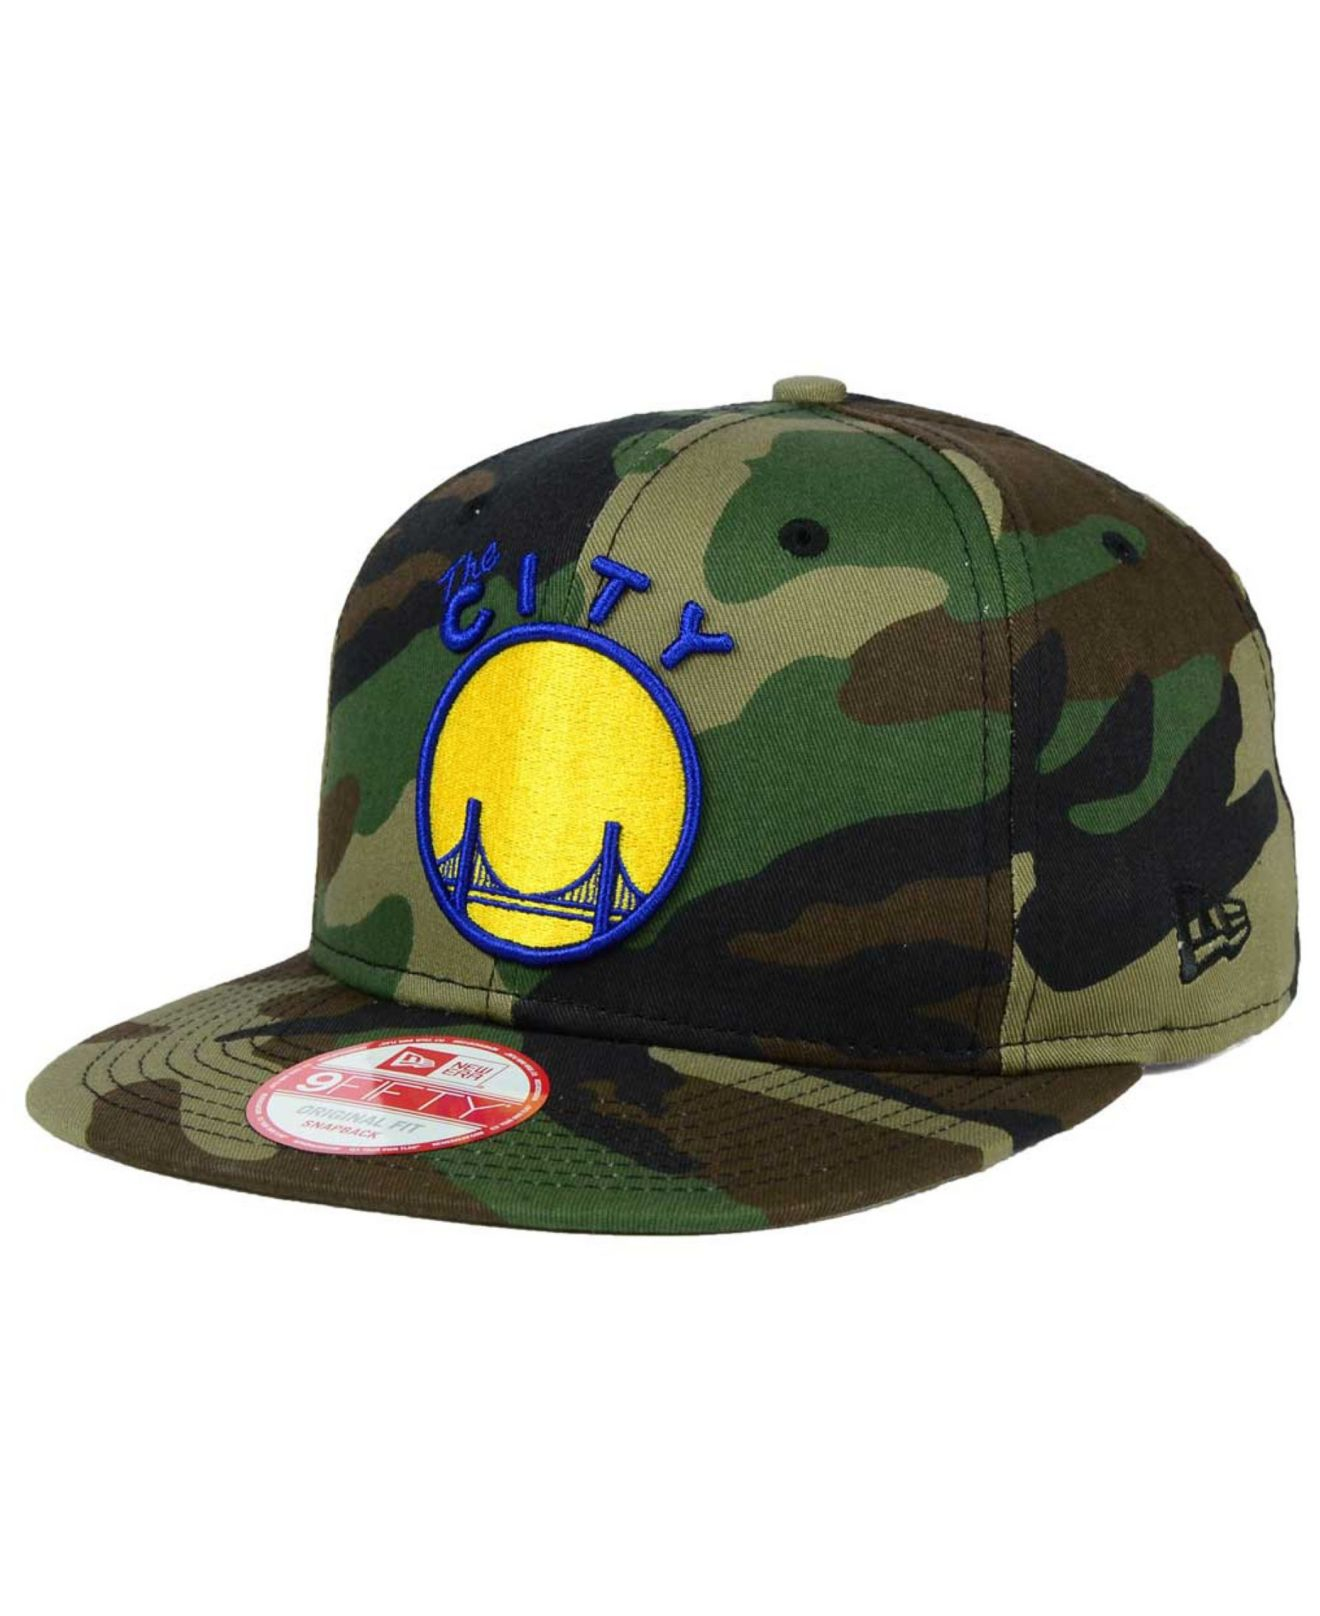 c5e95552cd1 Lyst - KTZ Golden State Warriors State Clip 9fifty Snapback Cap in ...